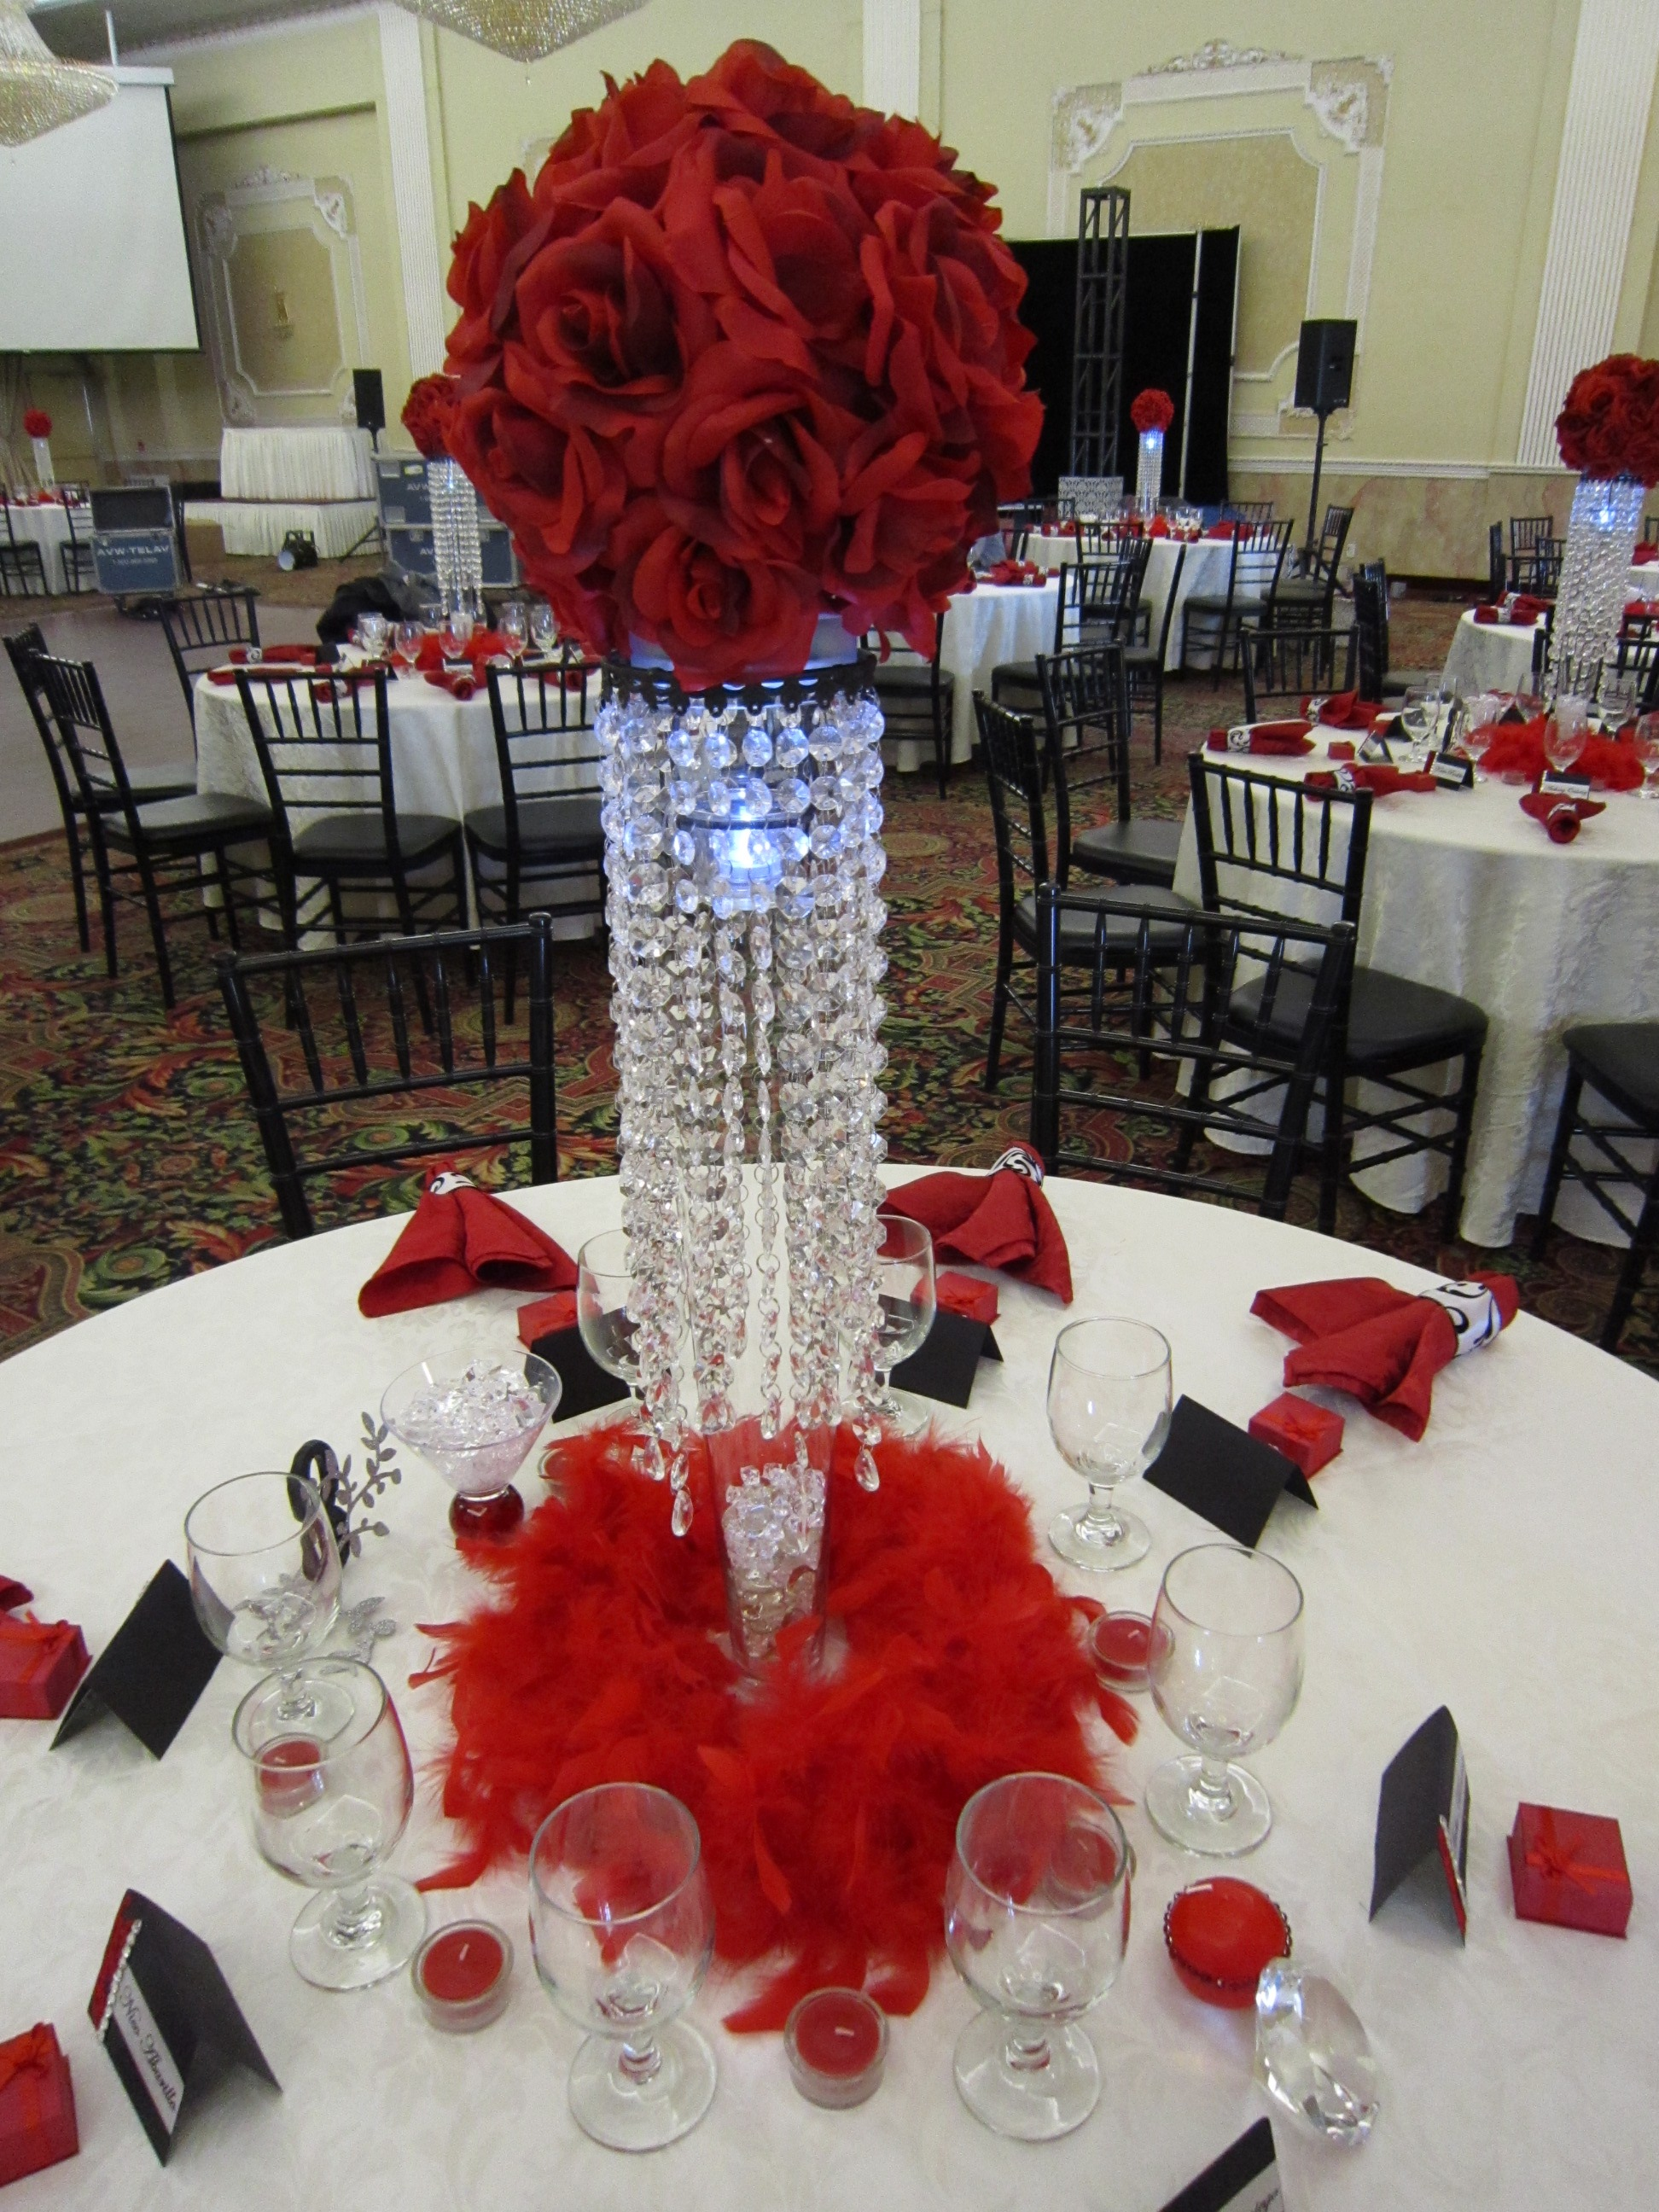 18th birthday party with red rose ball crystal centerpieces set the mood decor. Black Bedroom Furniture Sets. Home Design Ideas